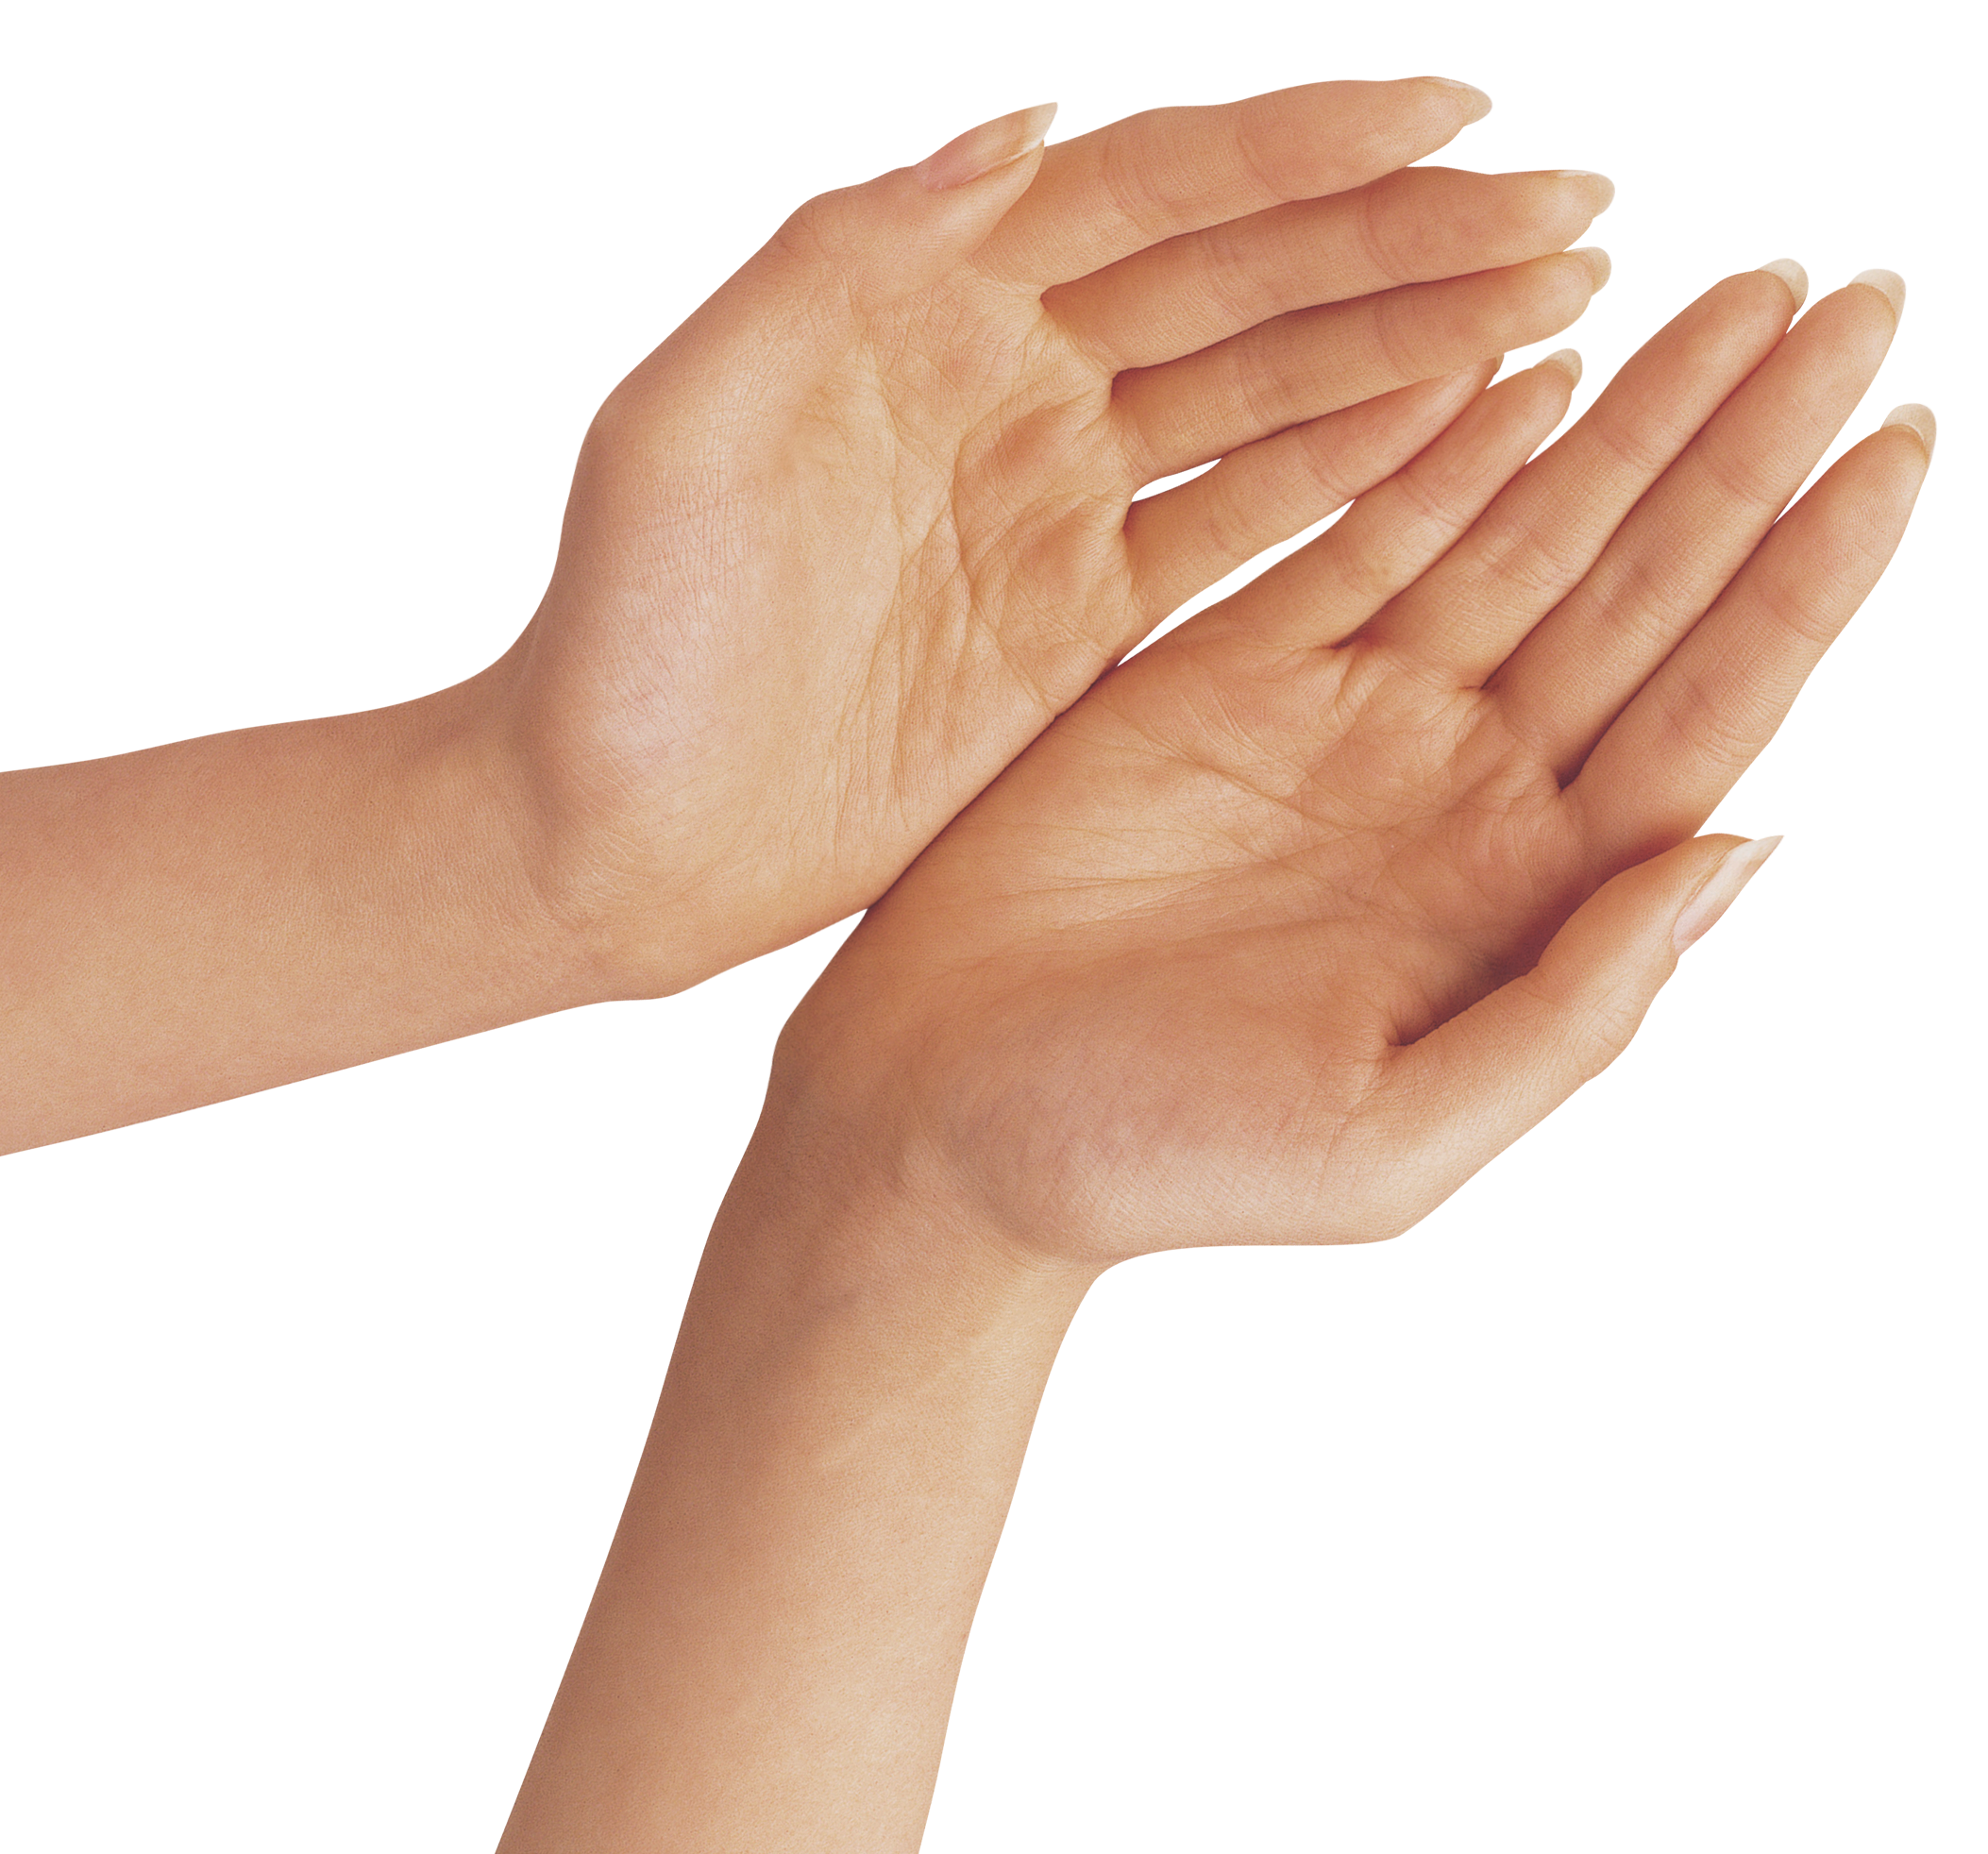 Two png image gallery. Hands clipart transparent background